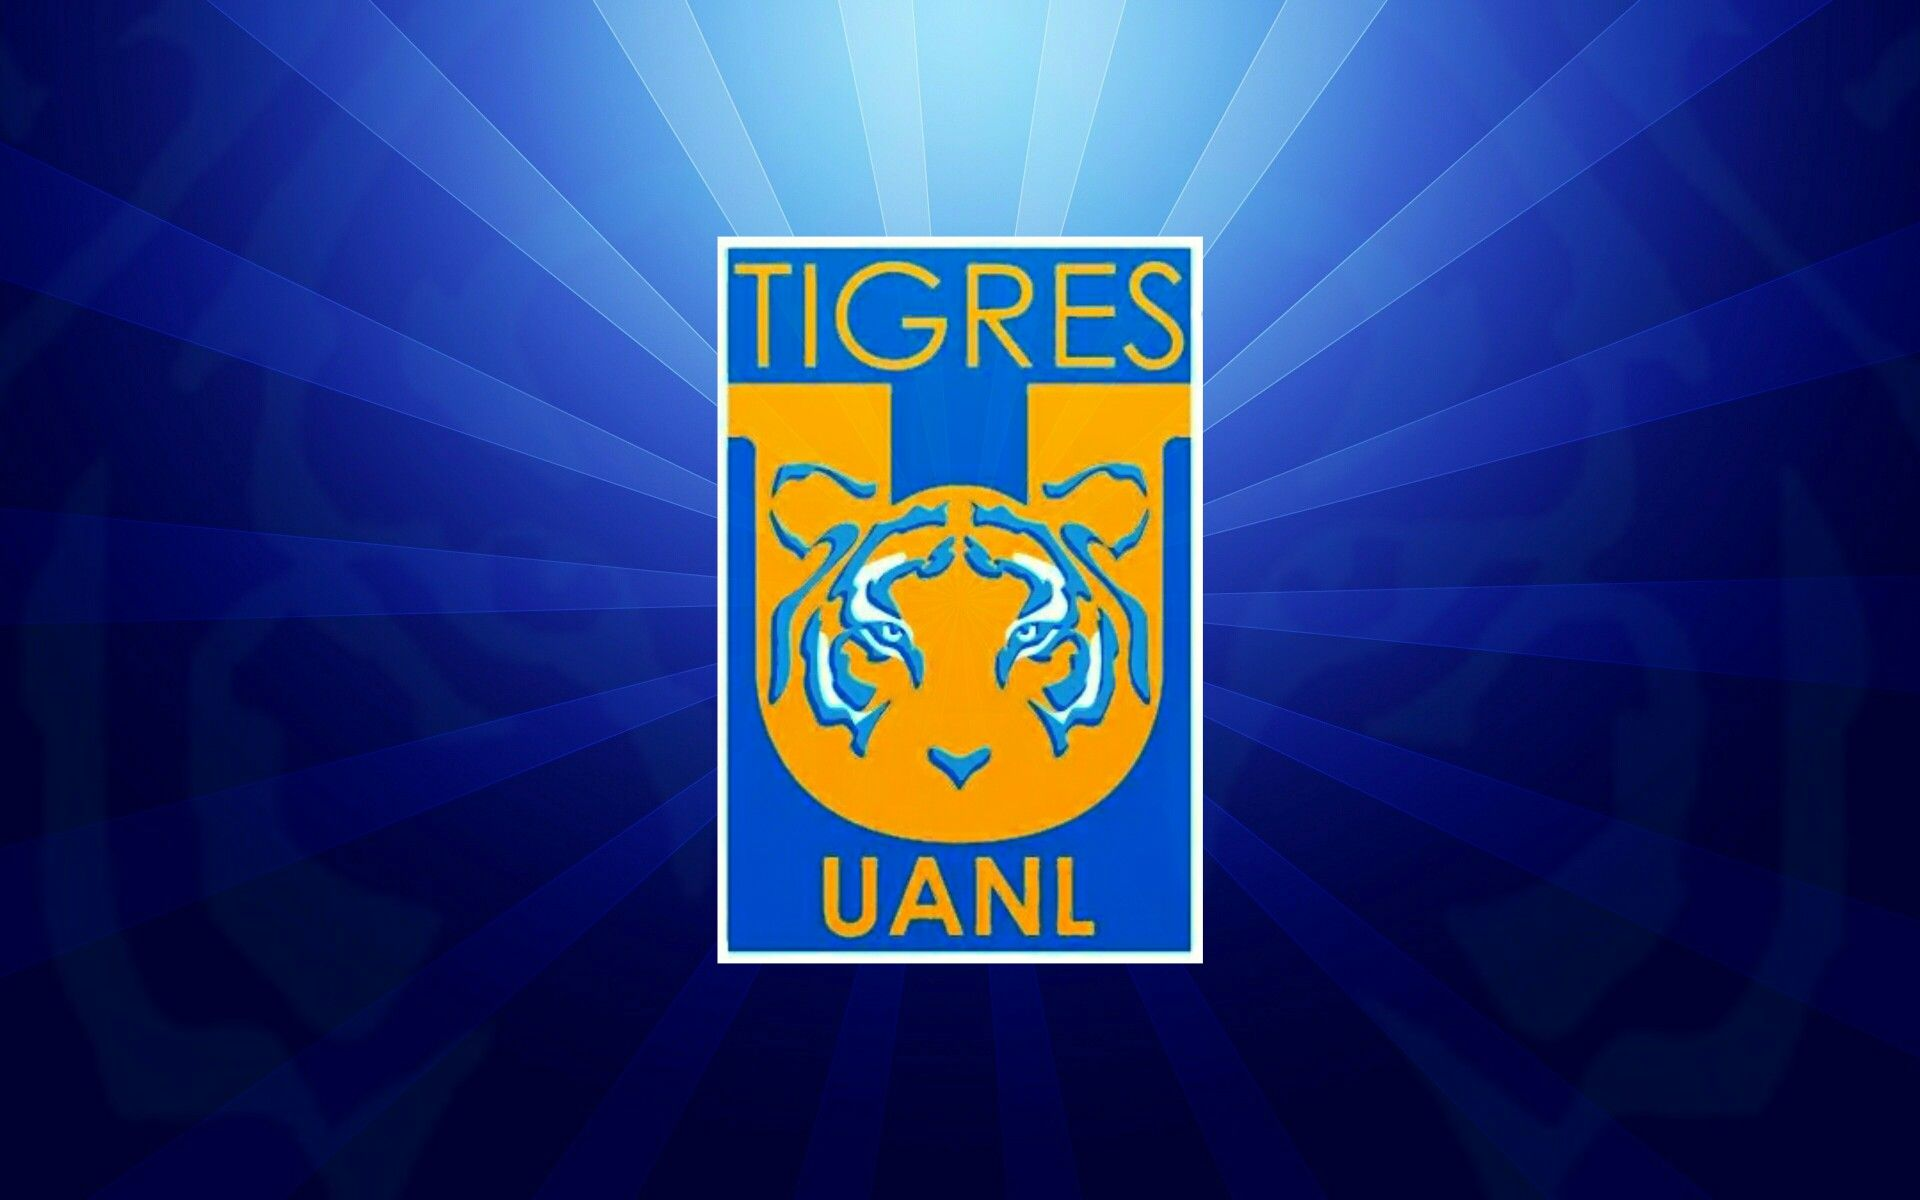 Wallpaper Tigres UANL